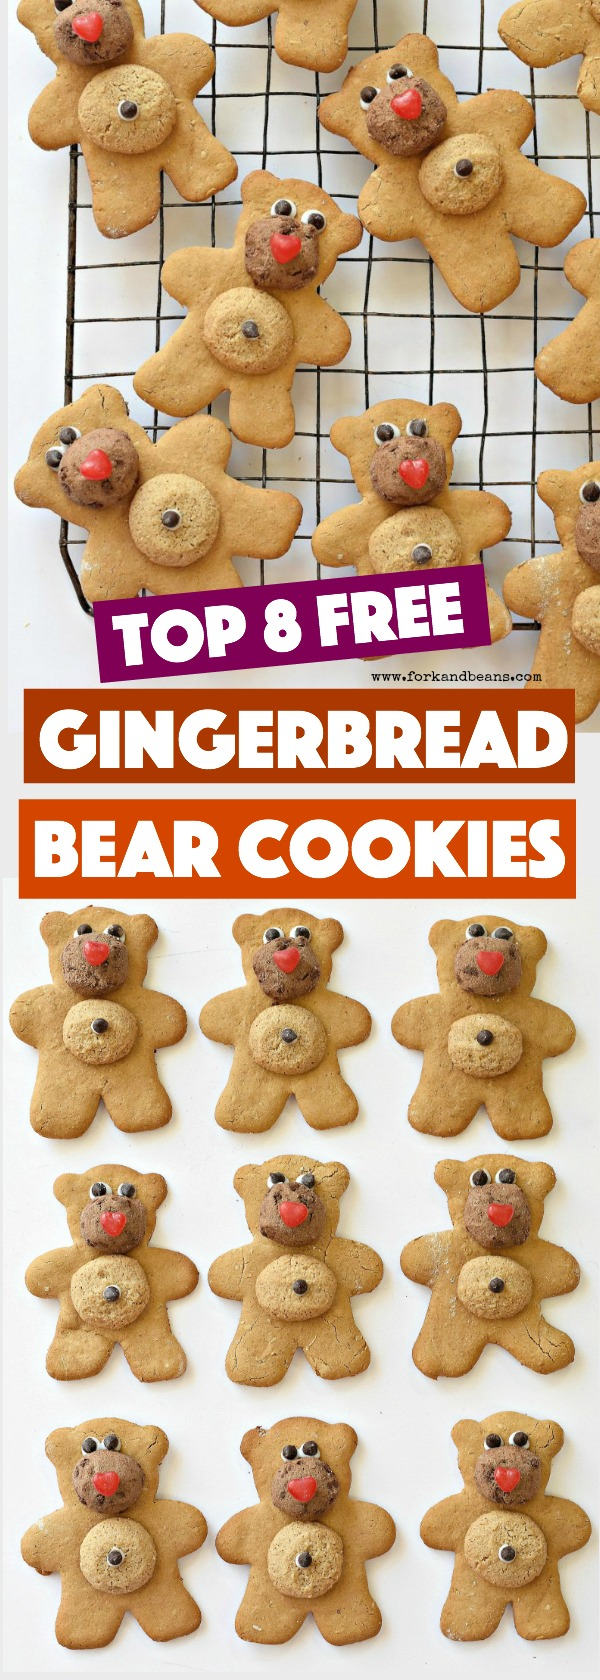 Make your holidays special for your little ones with food allergies with these Top 8 Free Gingerbread Bears.